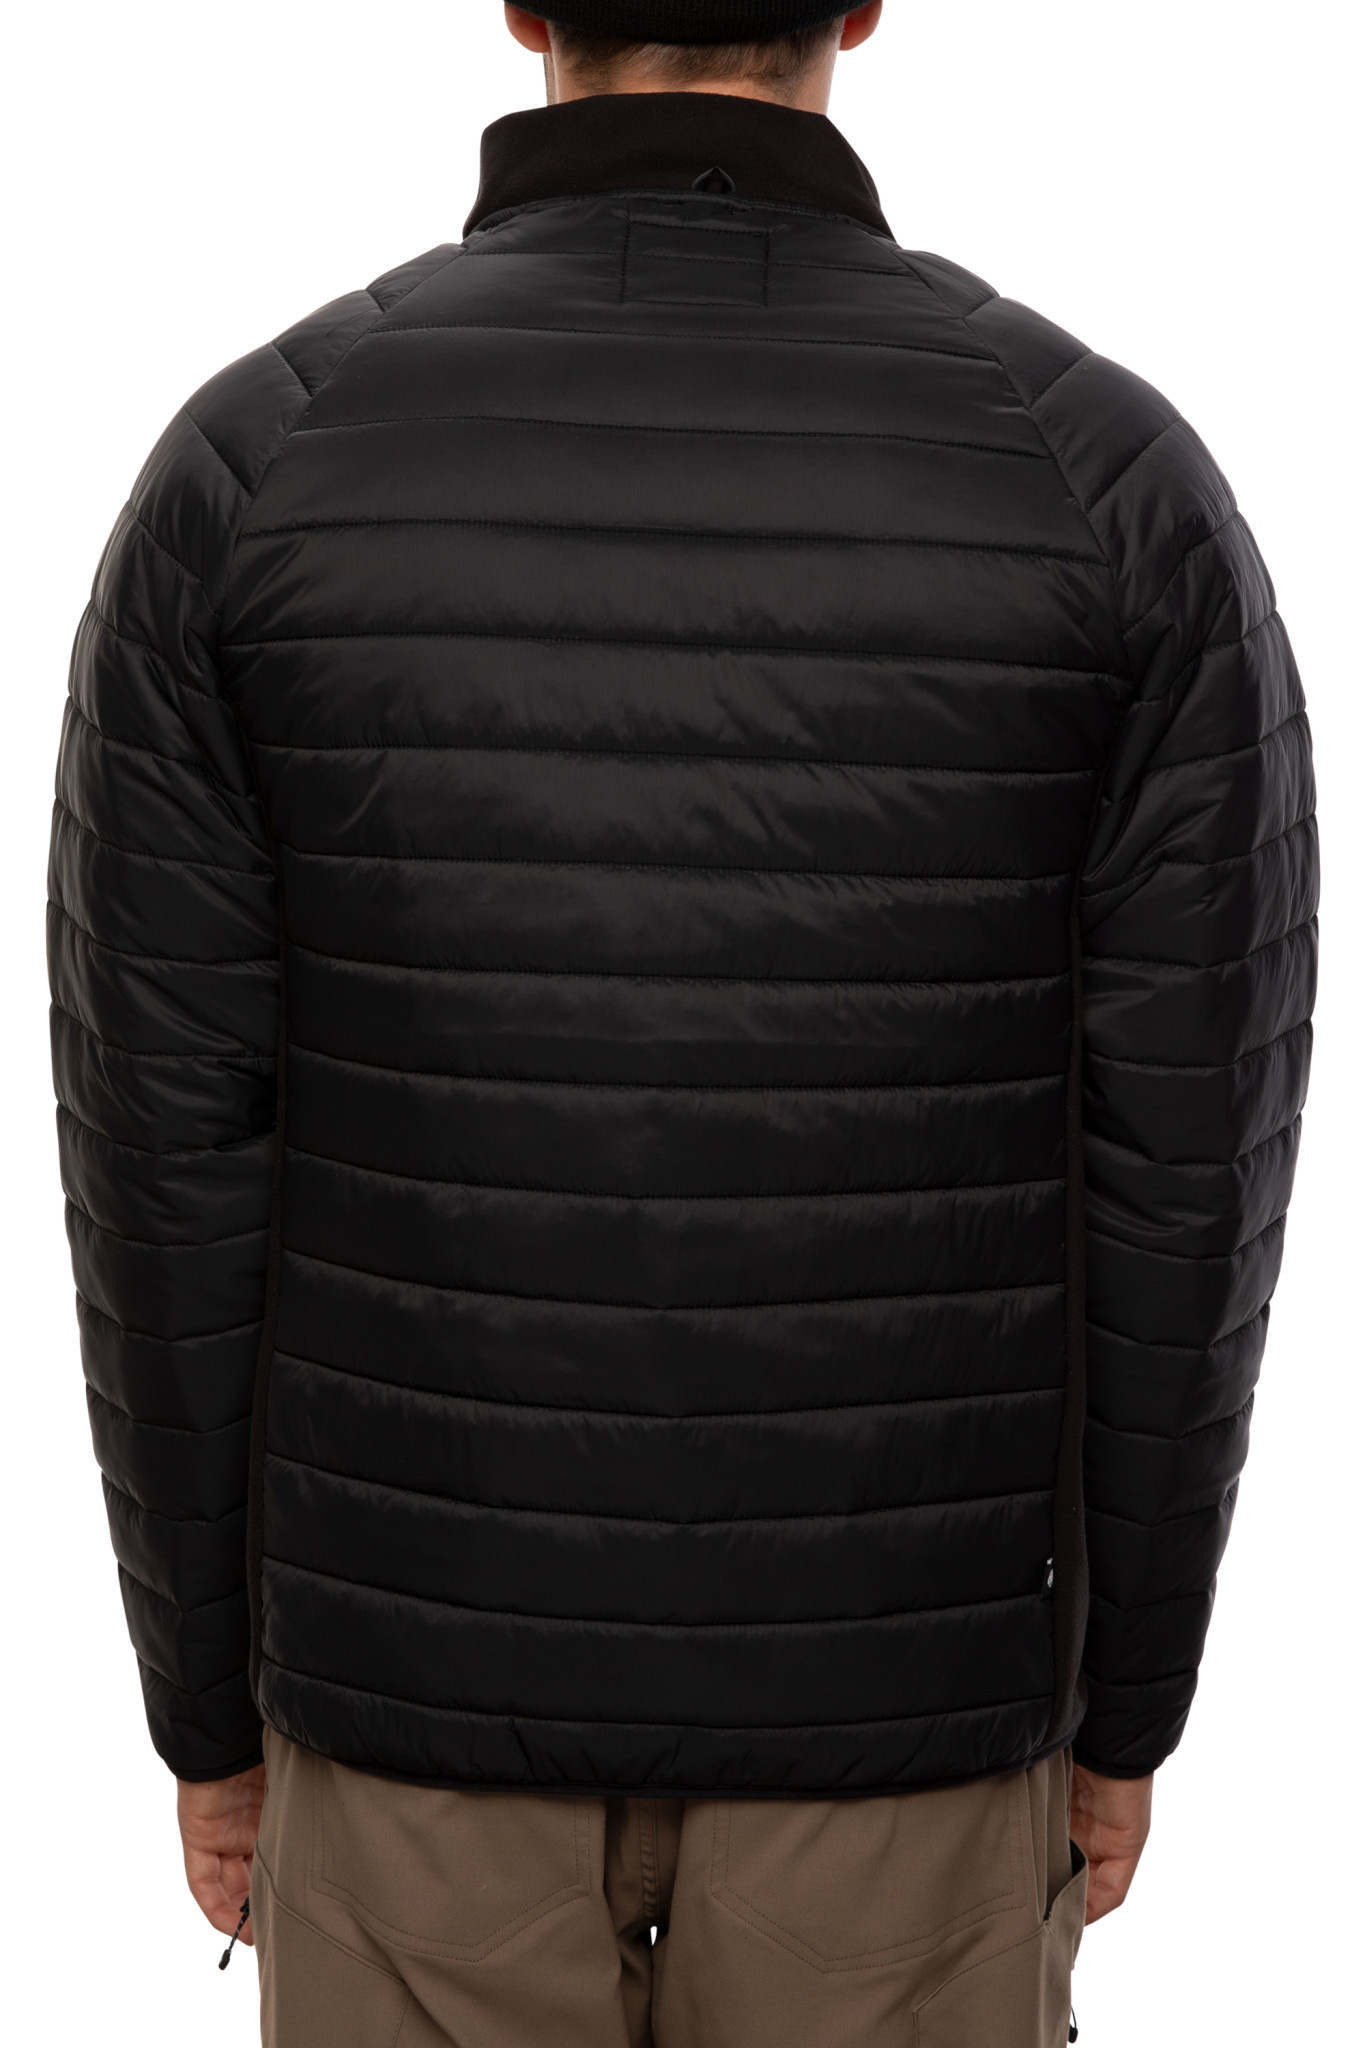 686 686 Men's Thermal Puff Jacket